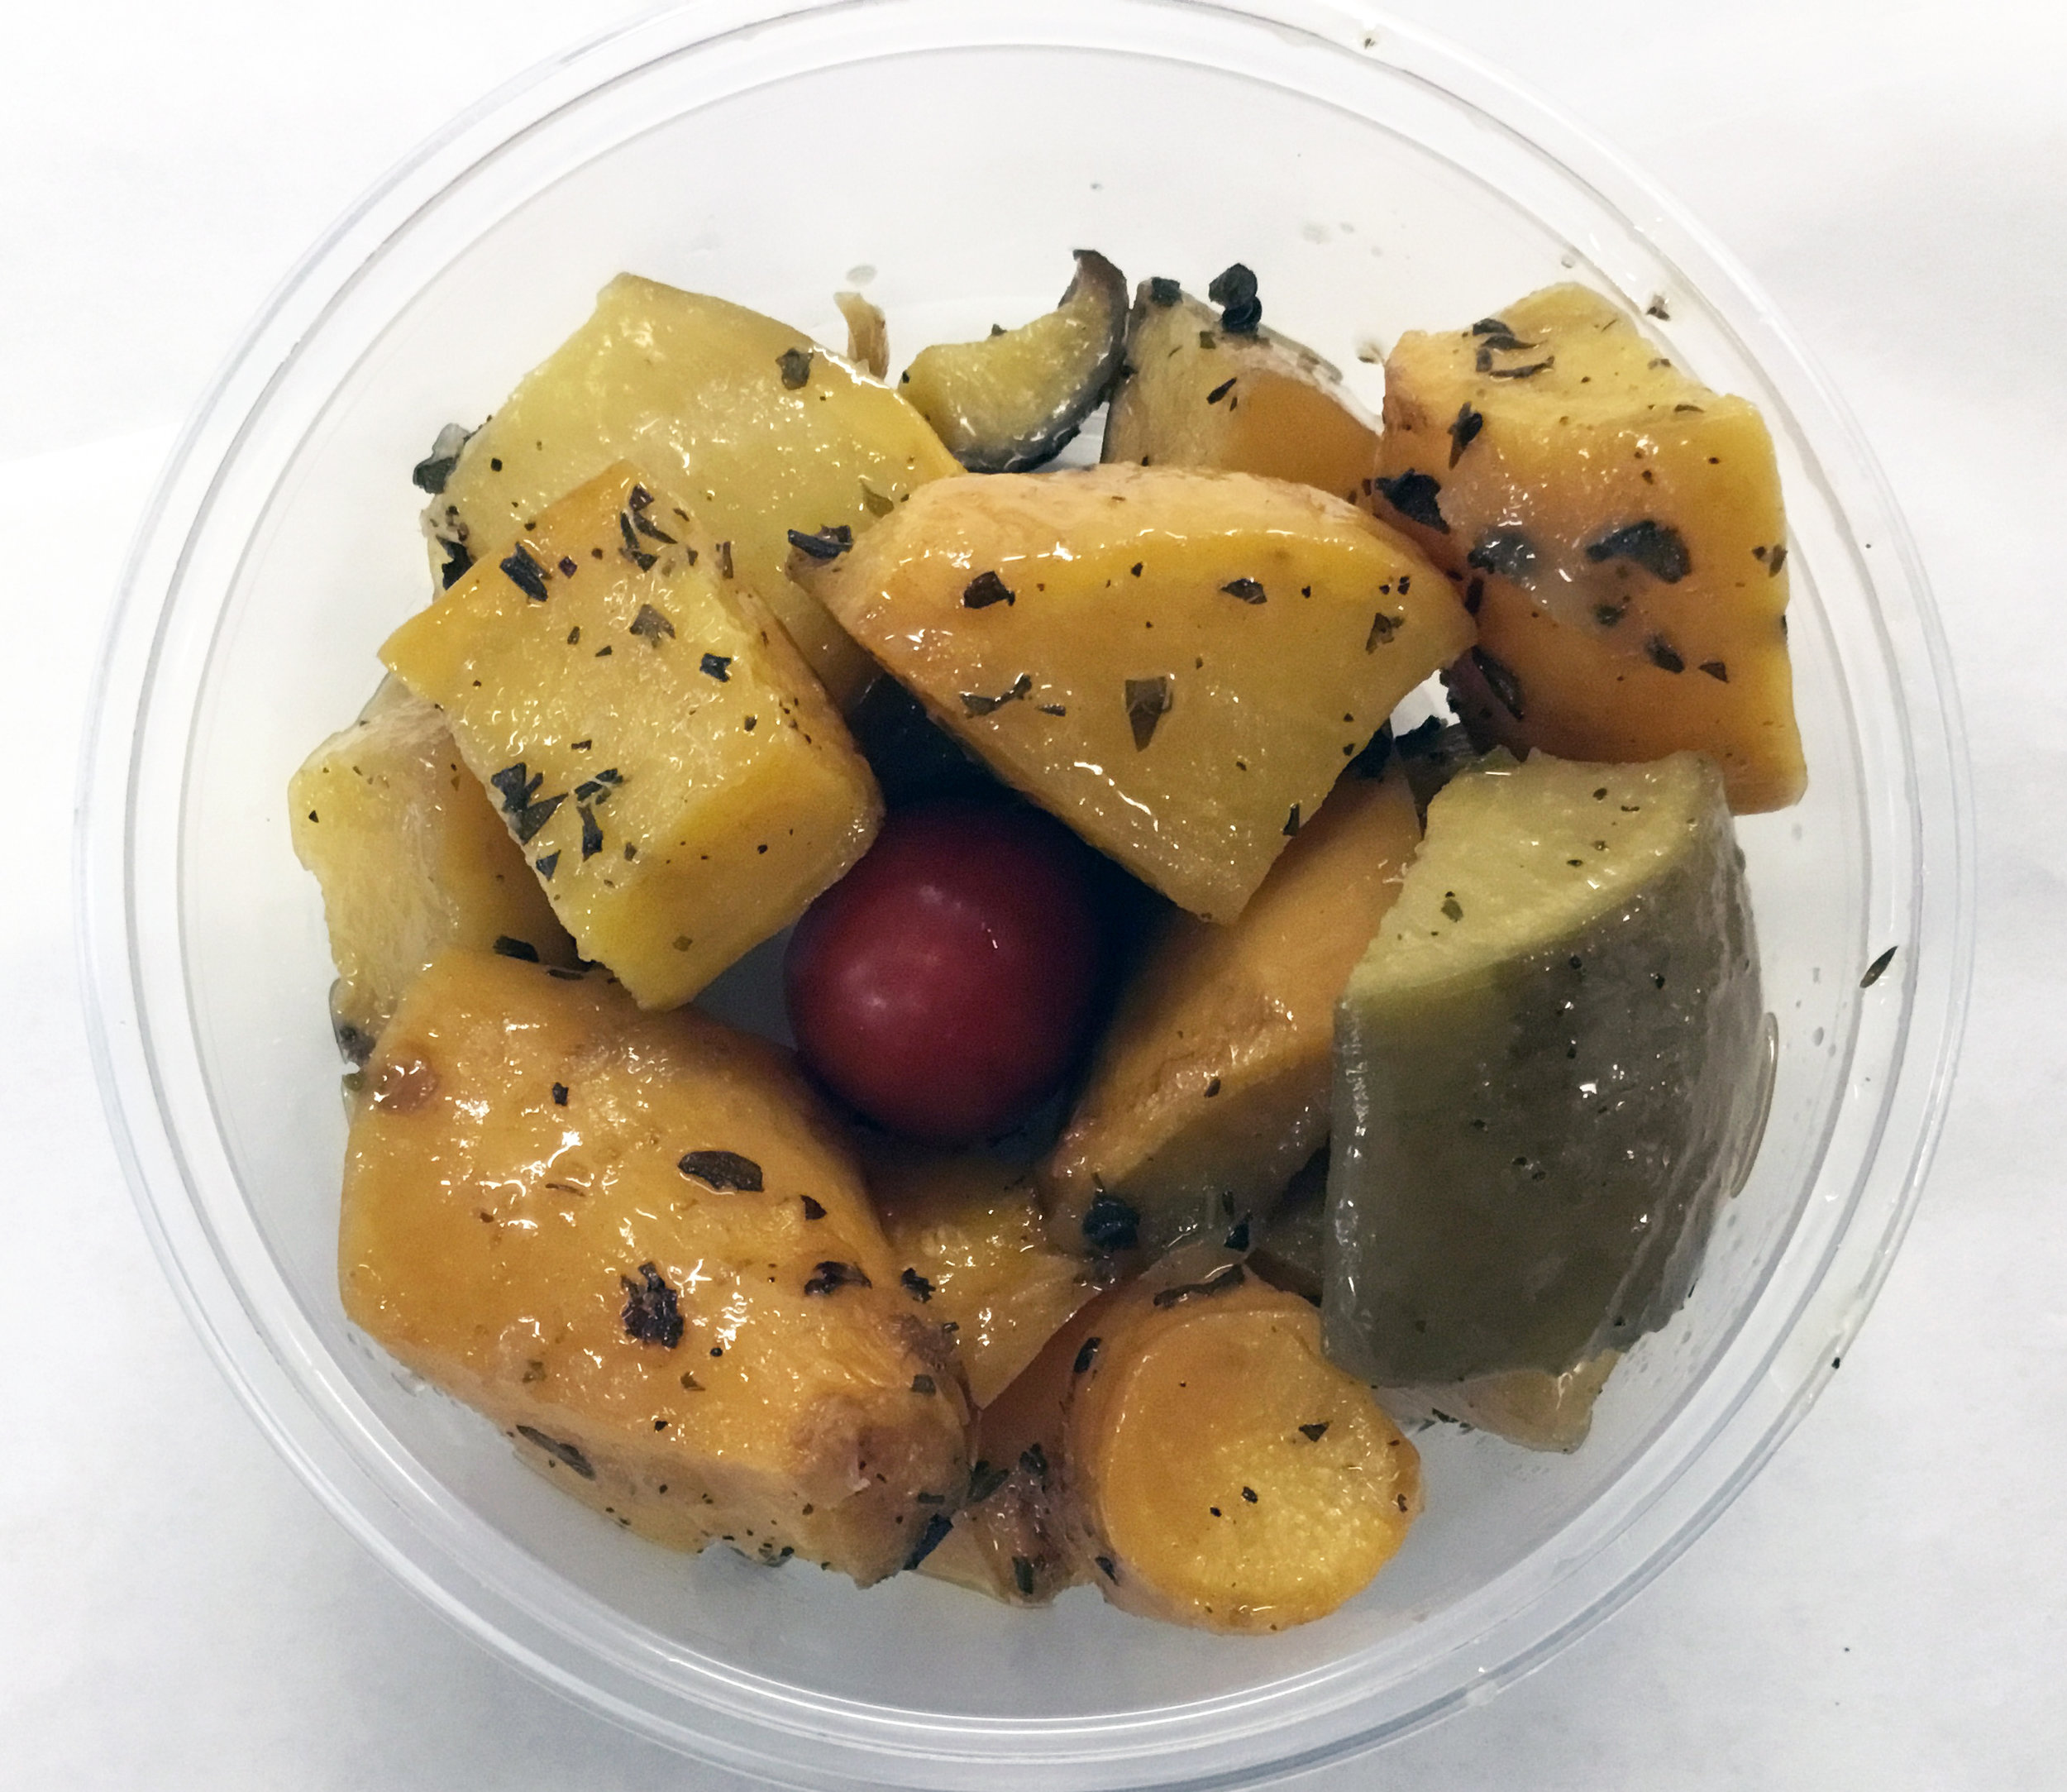 Baked rutabaga, thyme and oregano.